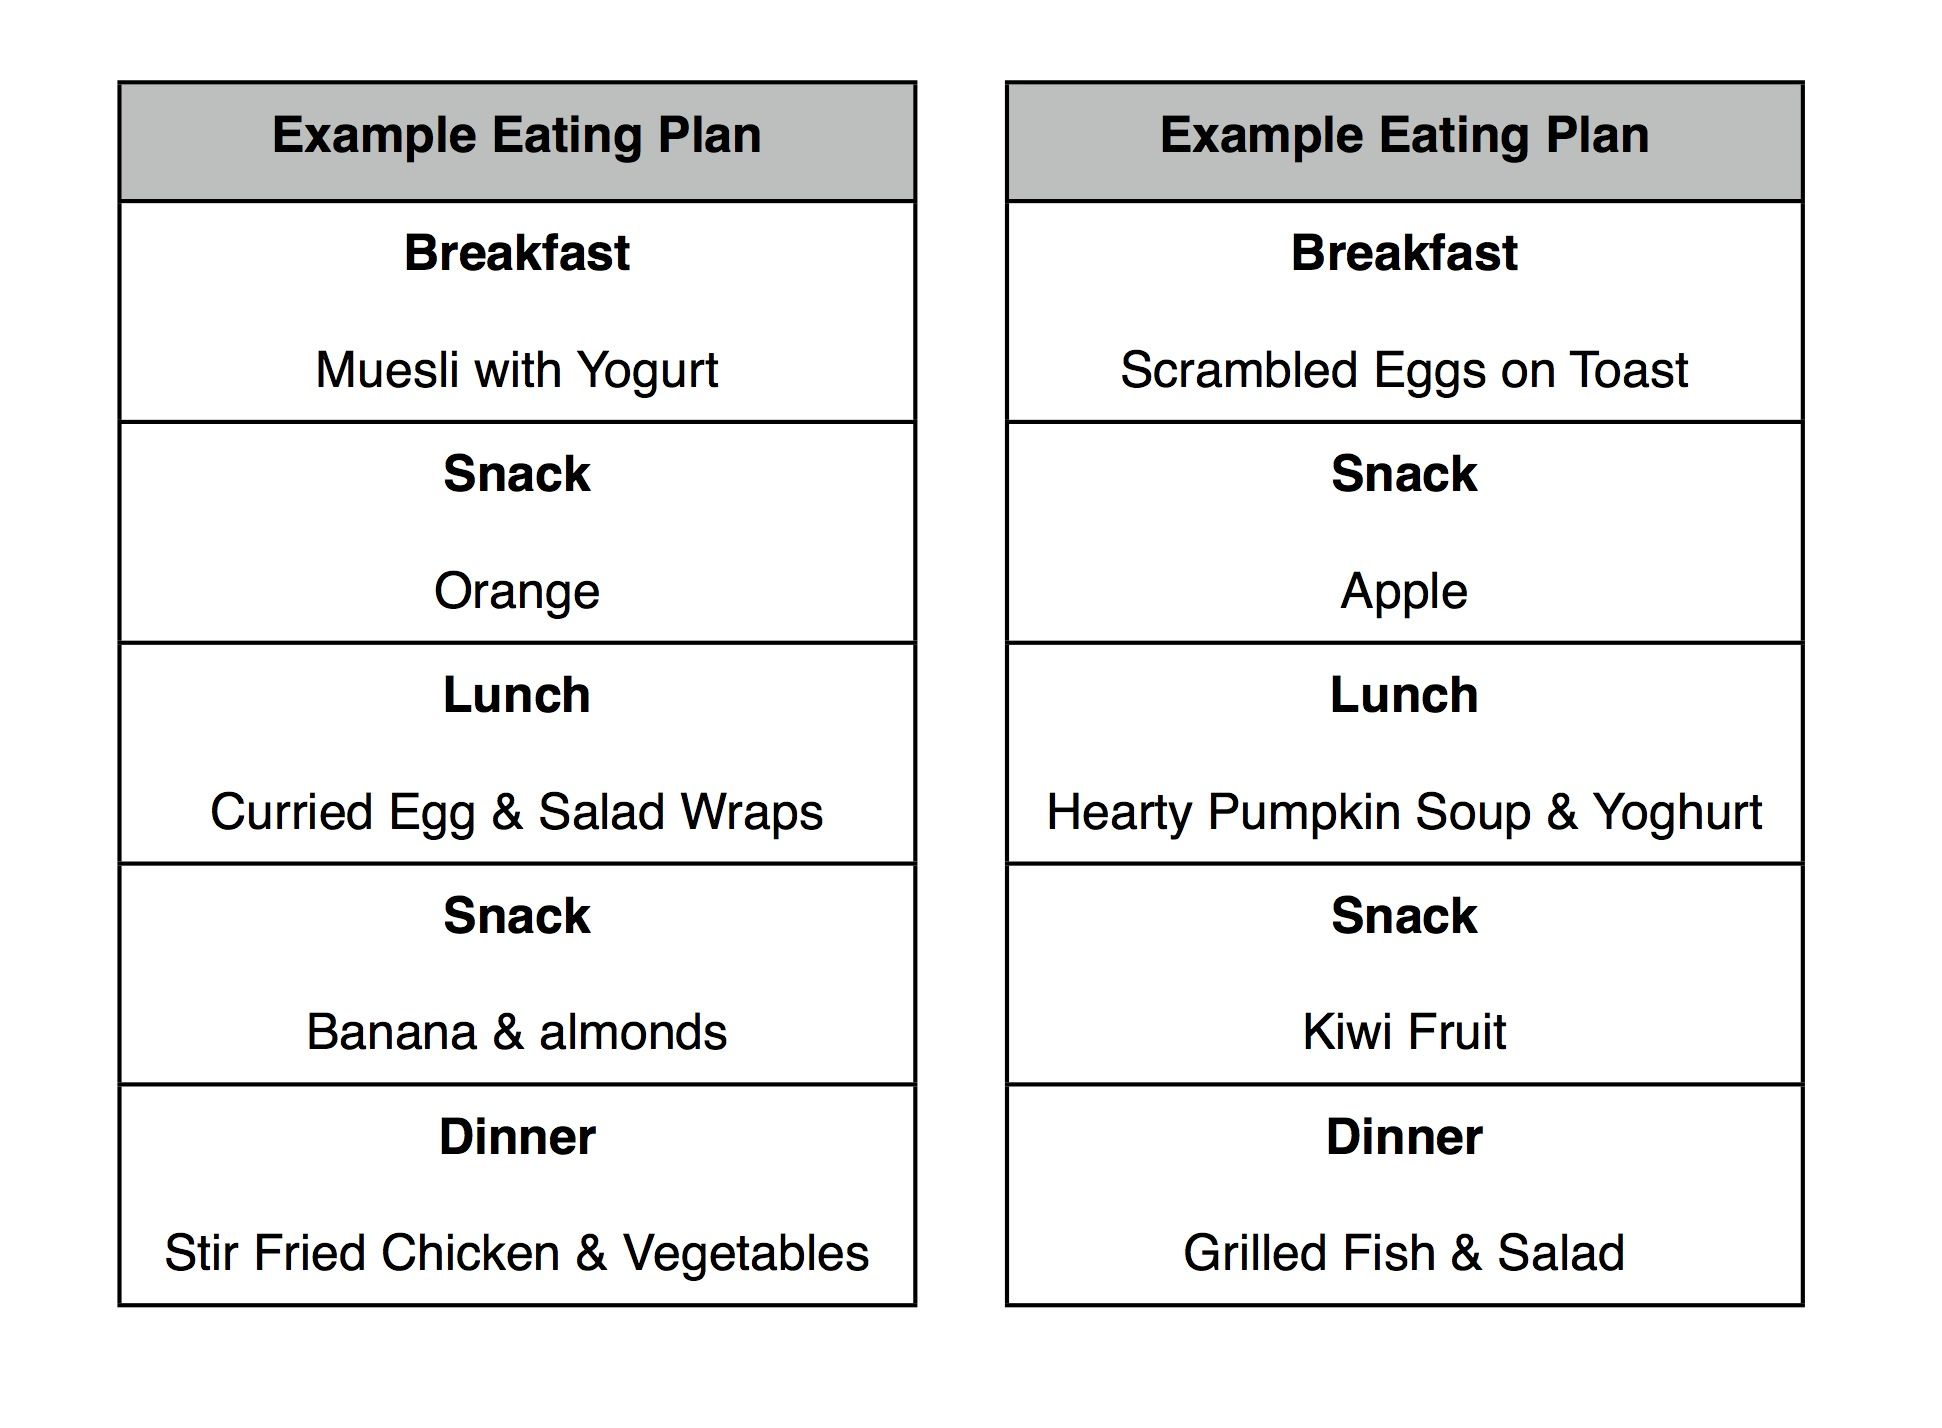 Basic healthy eating plan - Weight Loss Eating Plan Wallpaper Weight Loss Eating X 1428 279 Kb Jpeg X